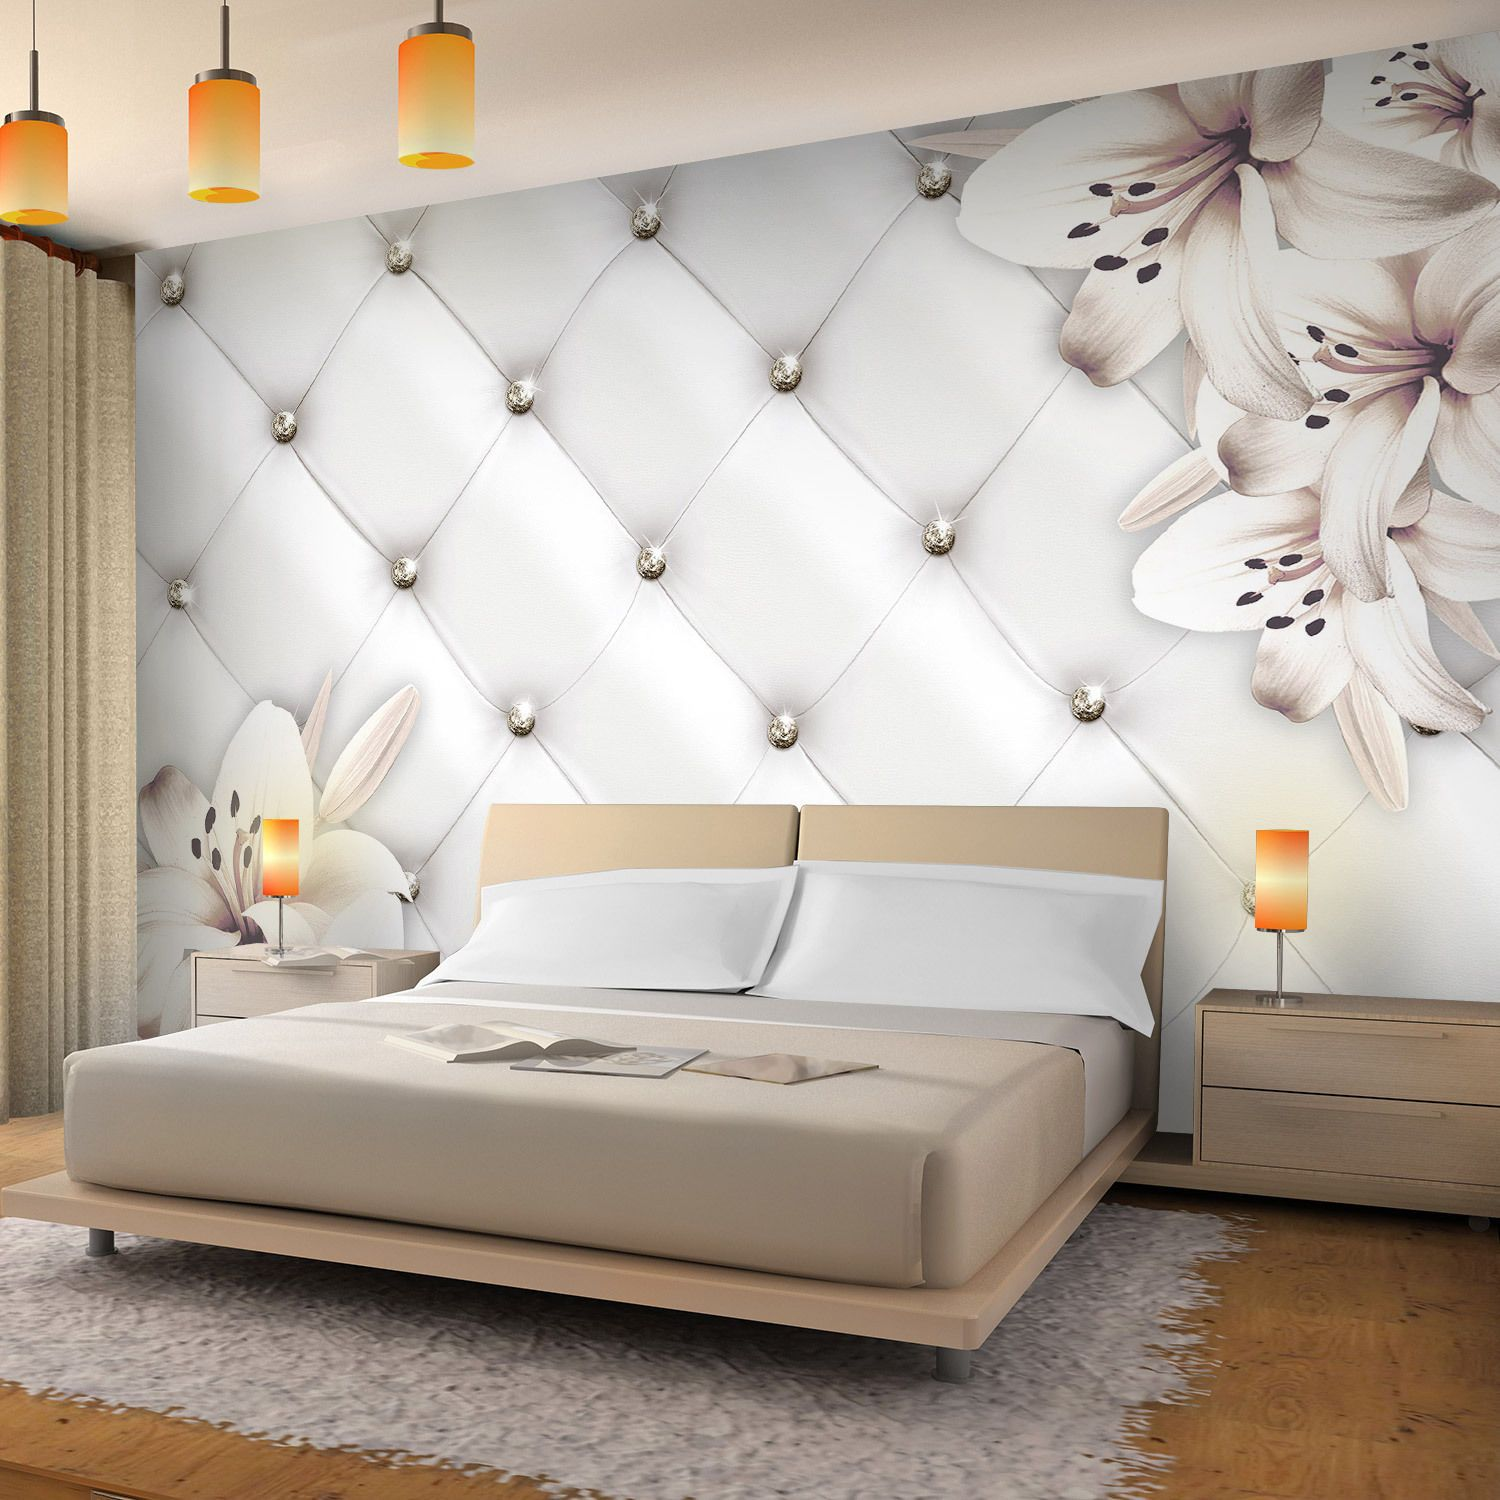 Vlies Fototapeten 3d Effekt Leder Blumen Tapete Schlafzimmer Wandbilder Xxl Eur 29 99 In 2020 Bedroom Furniture Design Master Bedrooms Decor Bedroom Decor